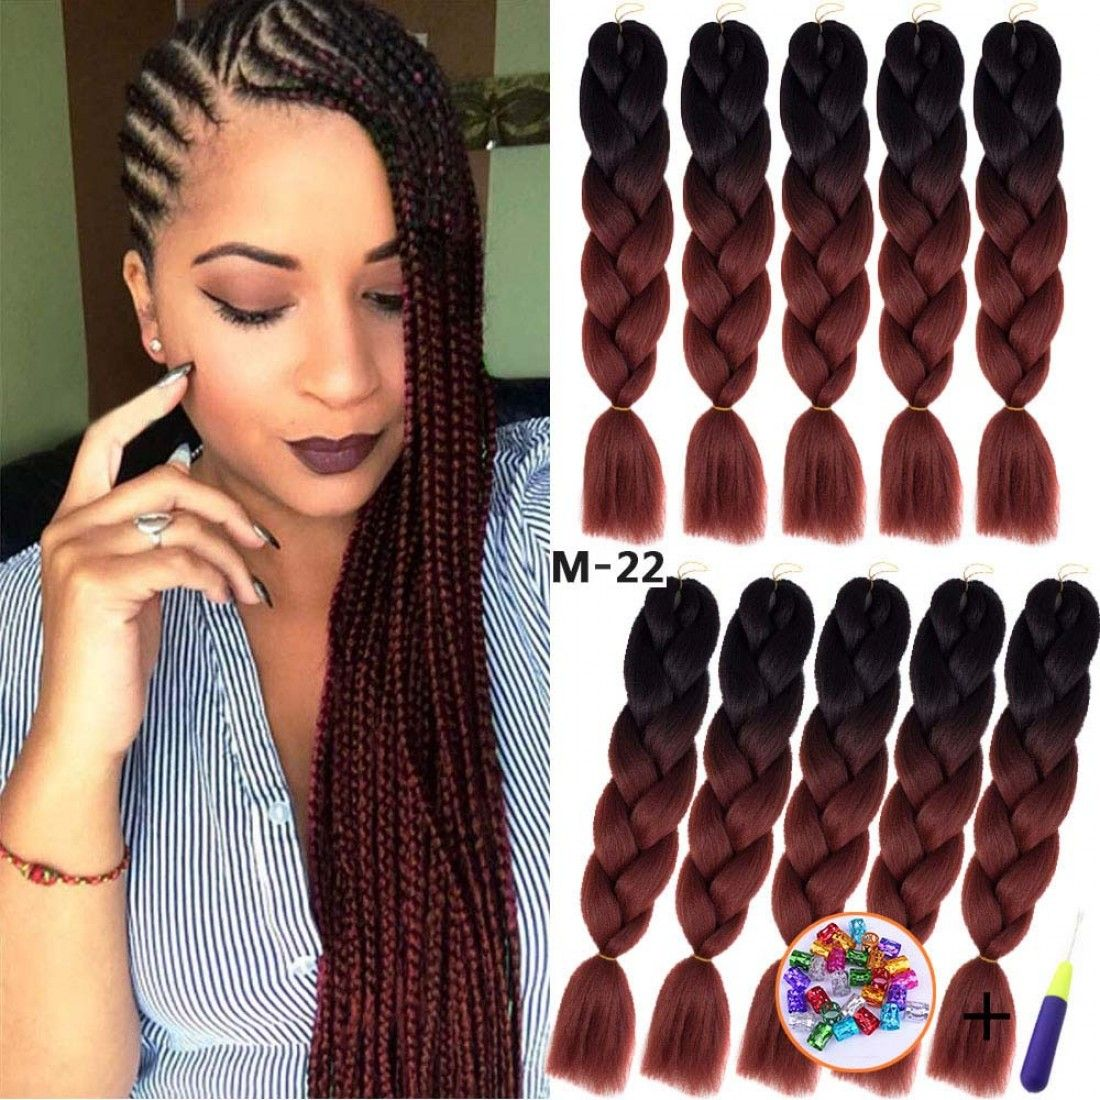 24 Inches Xpression Ombre Braiding Hair Braided Hairstyles Braiding Hair Colors Cool Braid Hairstyles